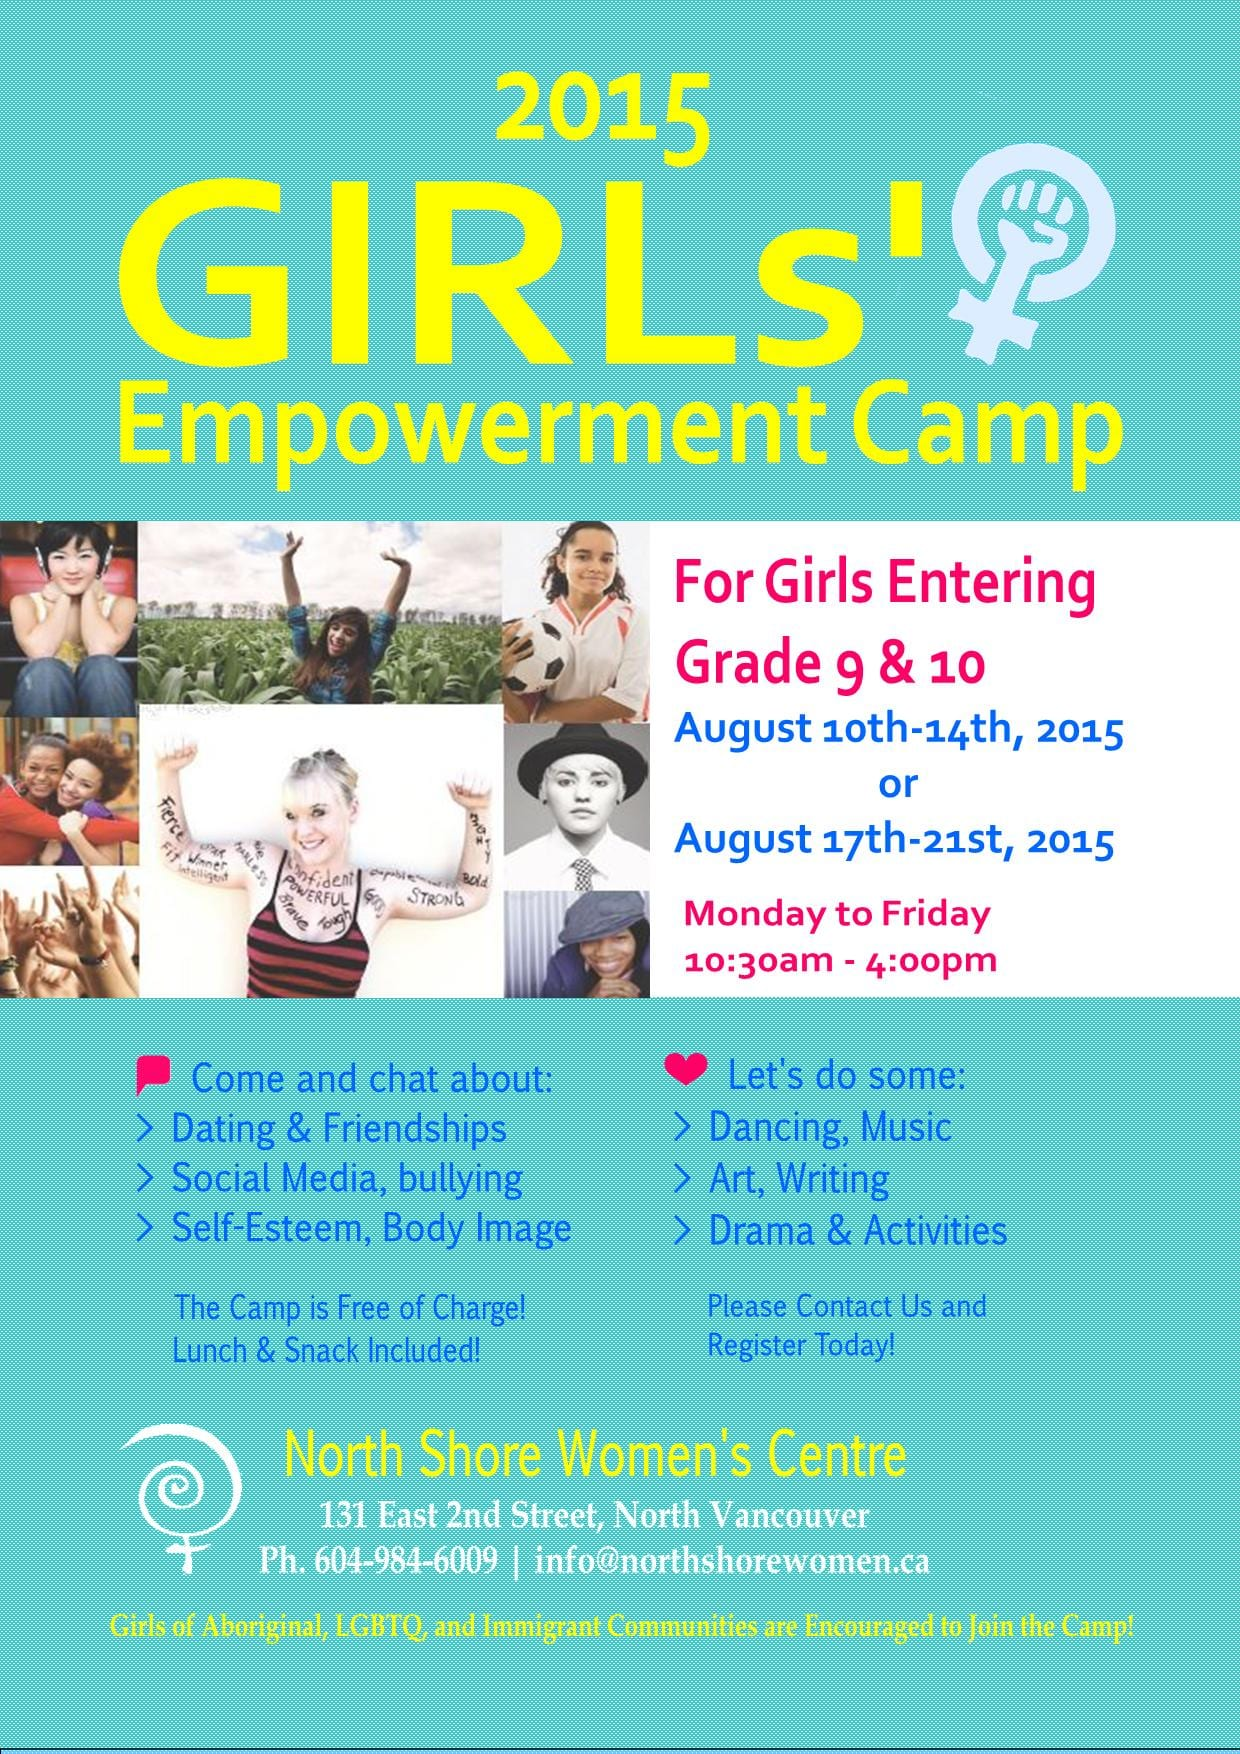 Girls Empowerment Camp at the North Shore Women's Centre